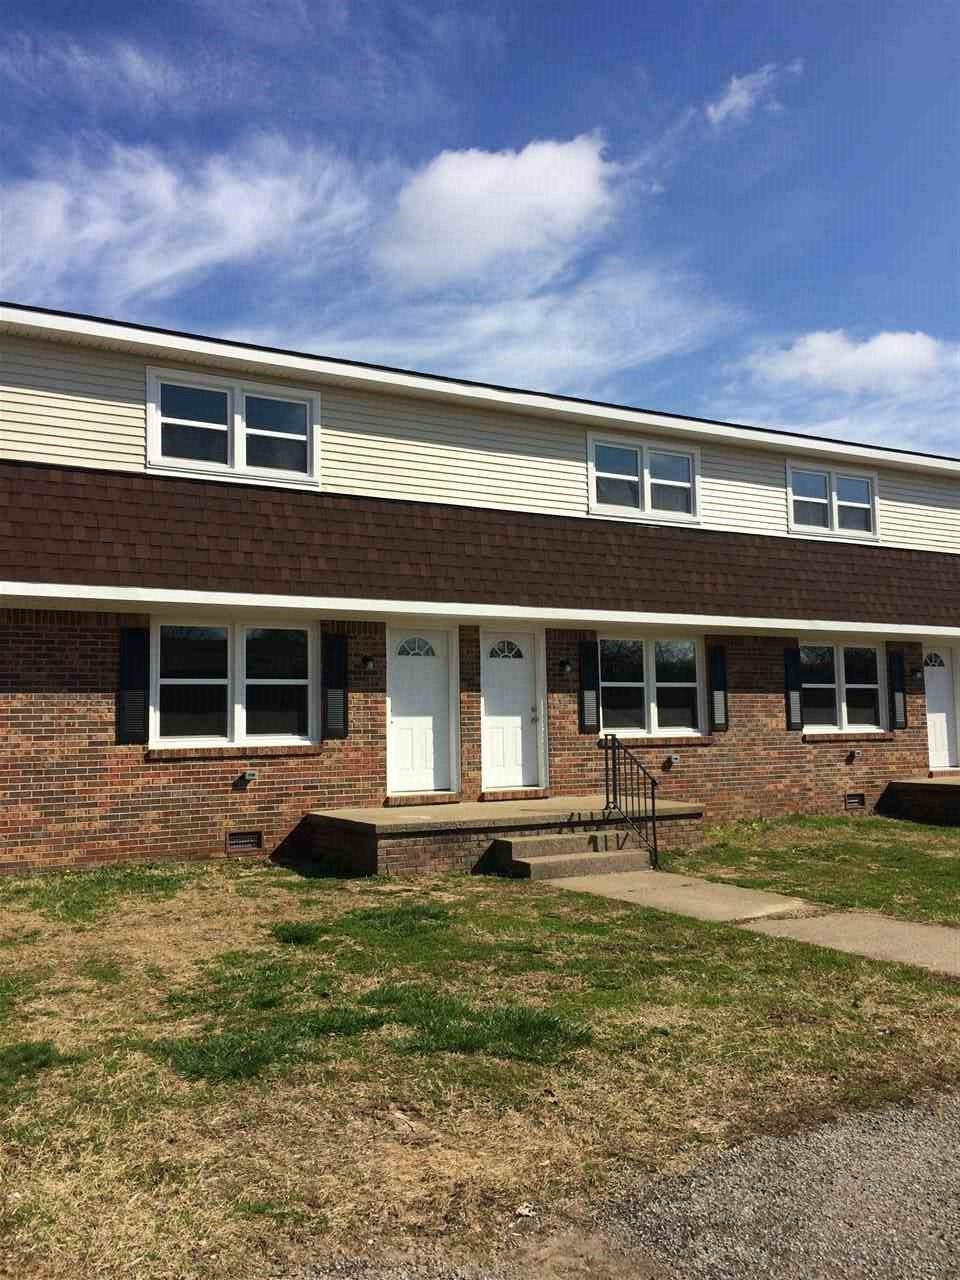 Rental Homes for Rent, ListingId:32536189, location: 210 Glenn St Paducah 42003